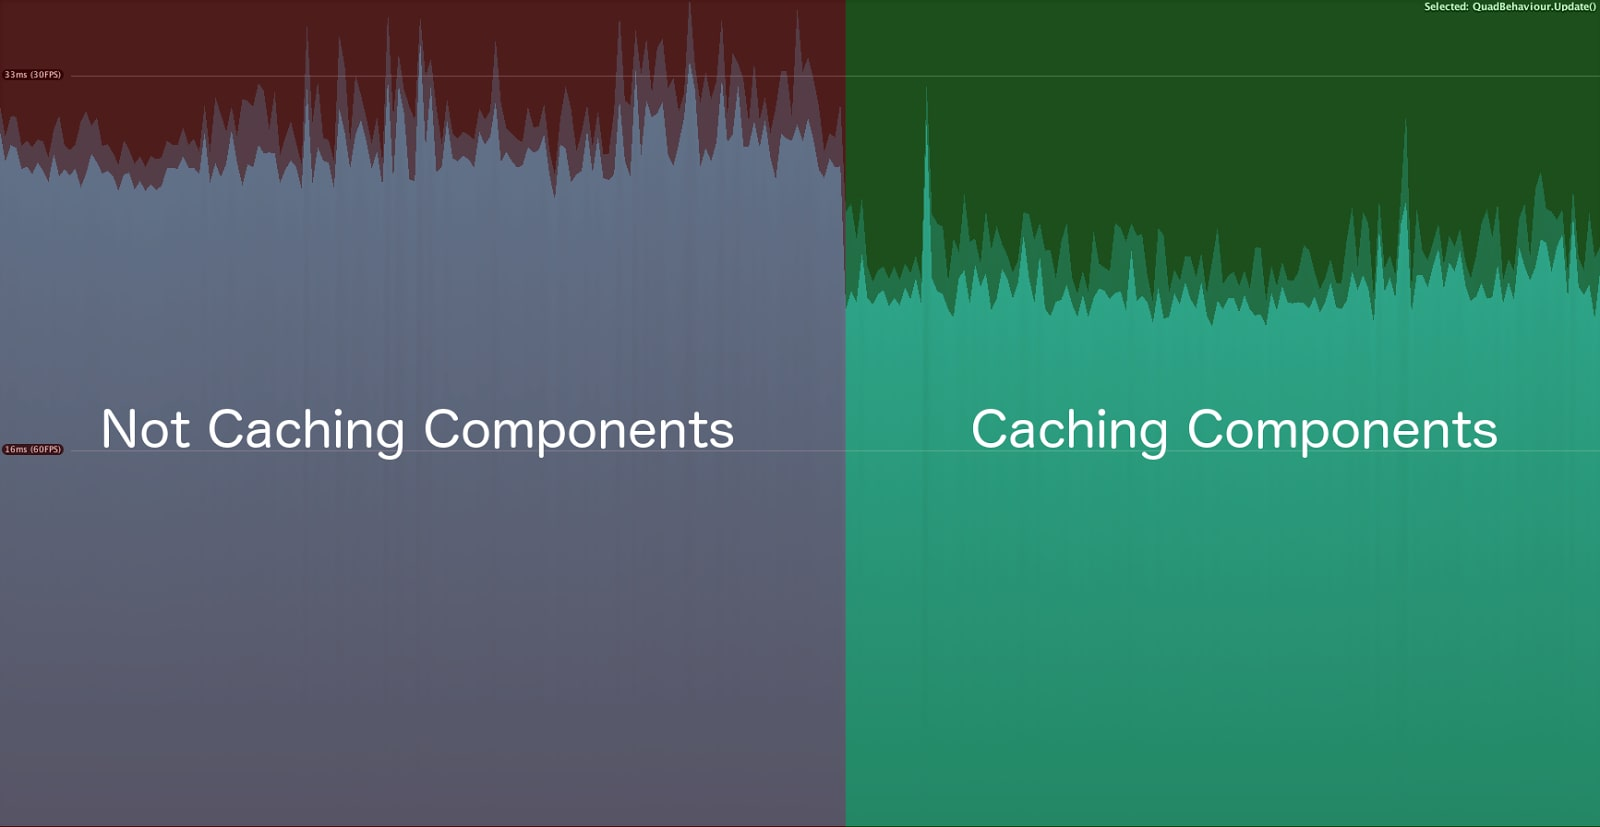 CacheComponents.png